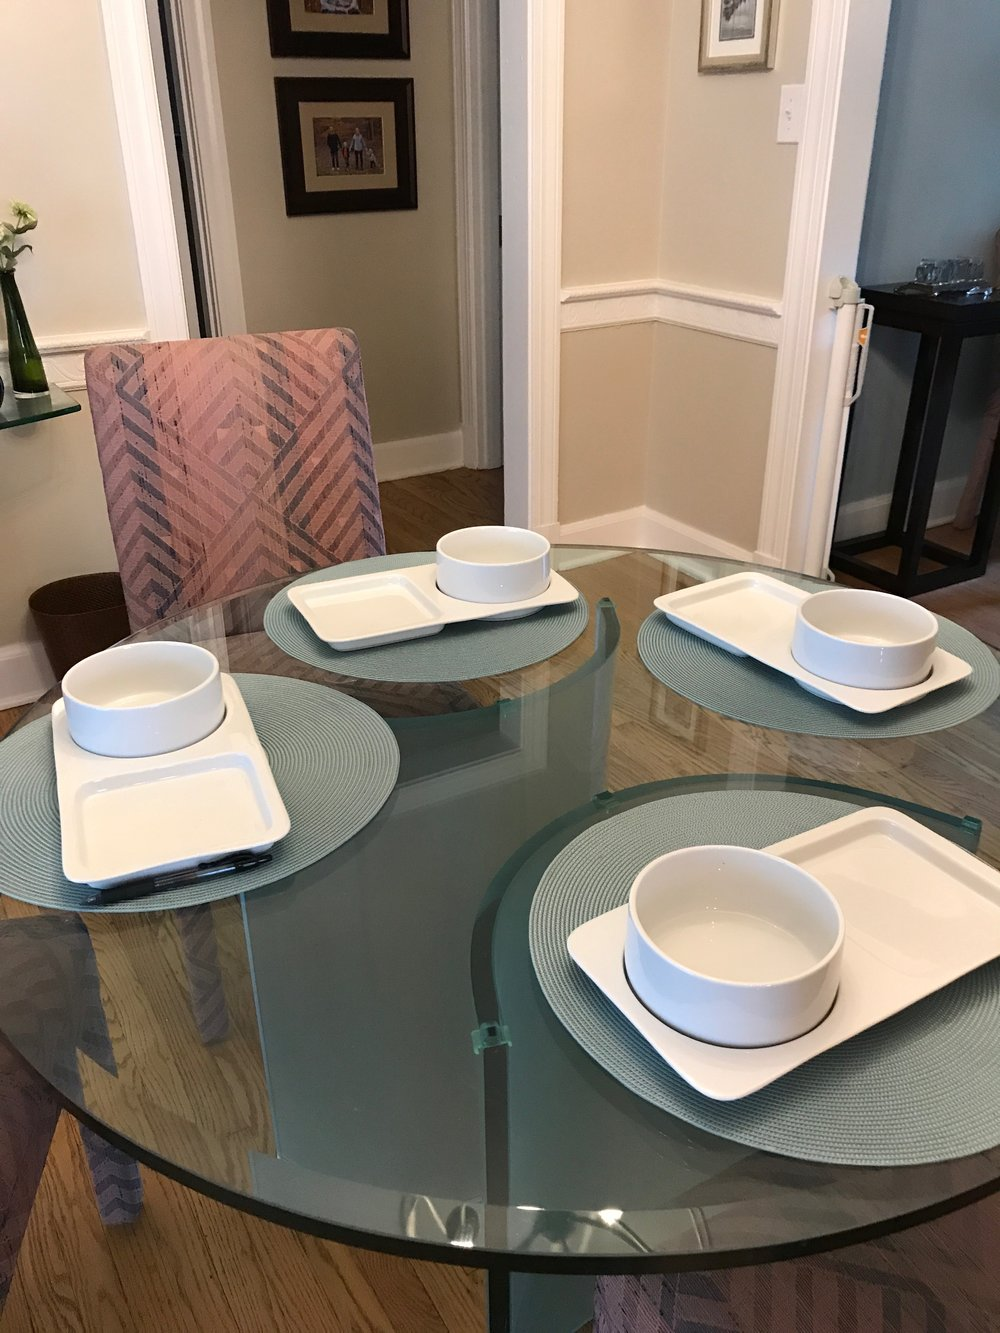 Set of four soup and sandwich plates and bowls